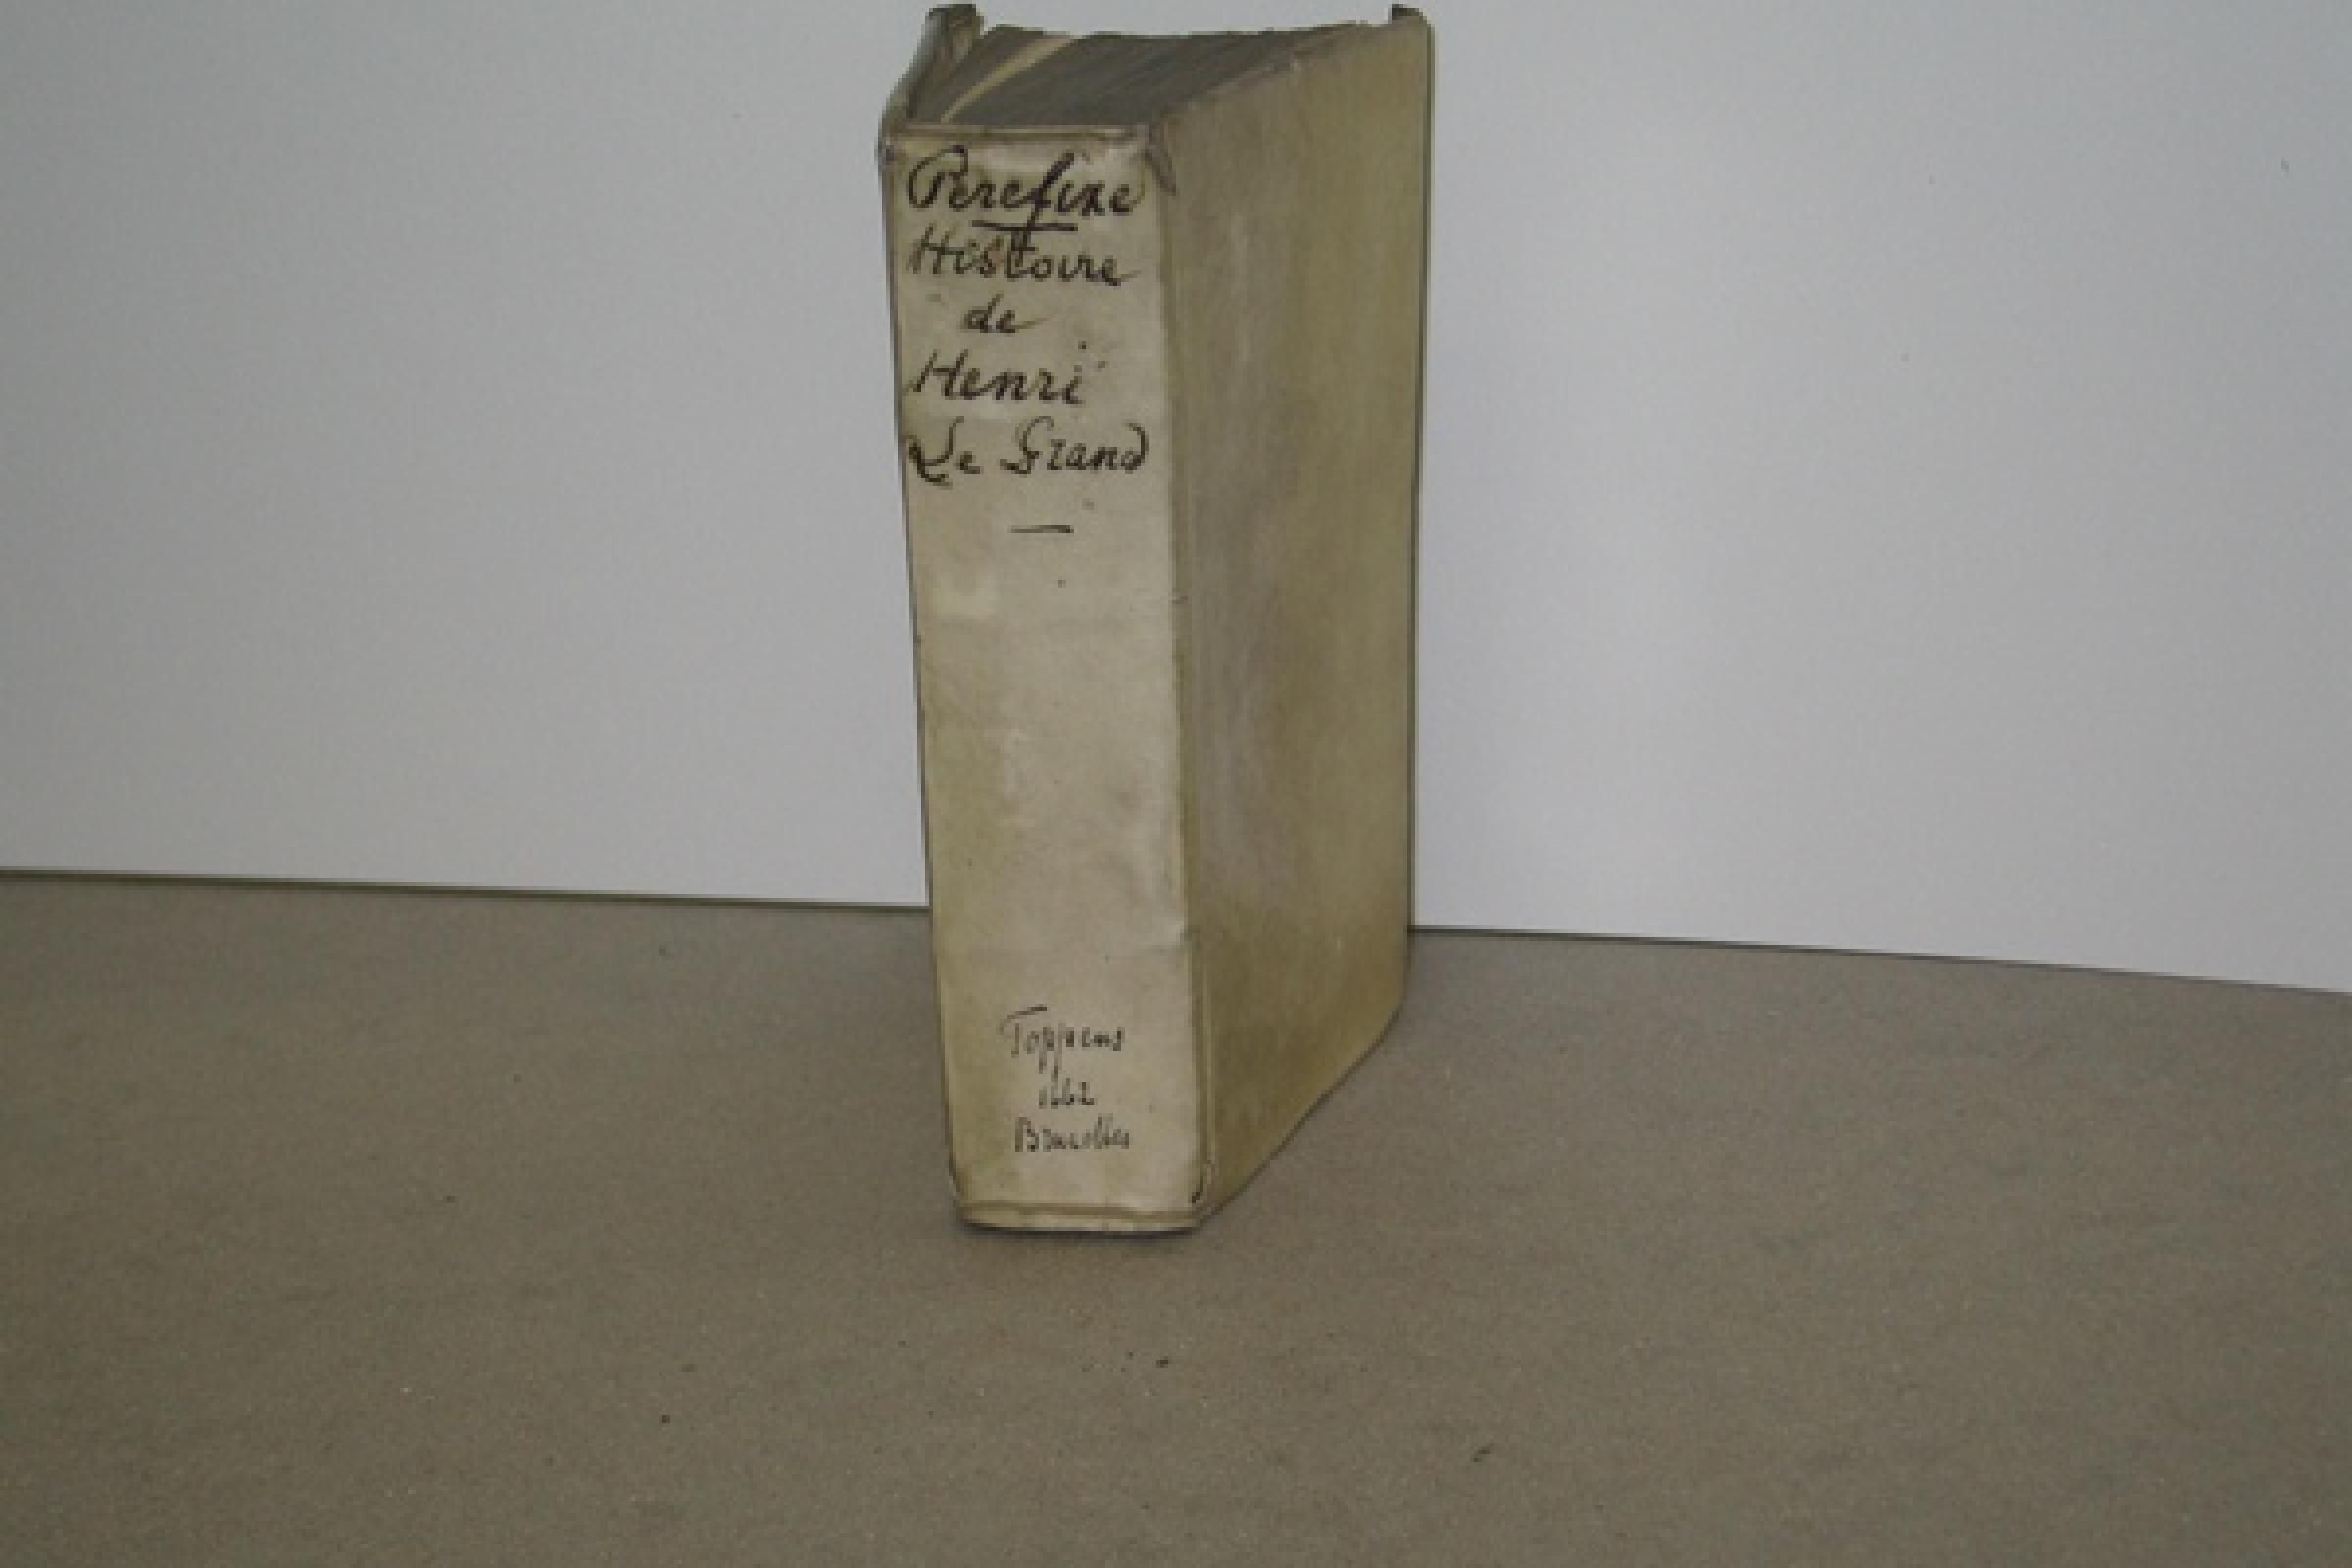 Vellum bound book from Elsevier Collection